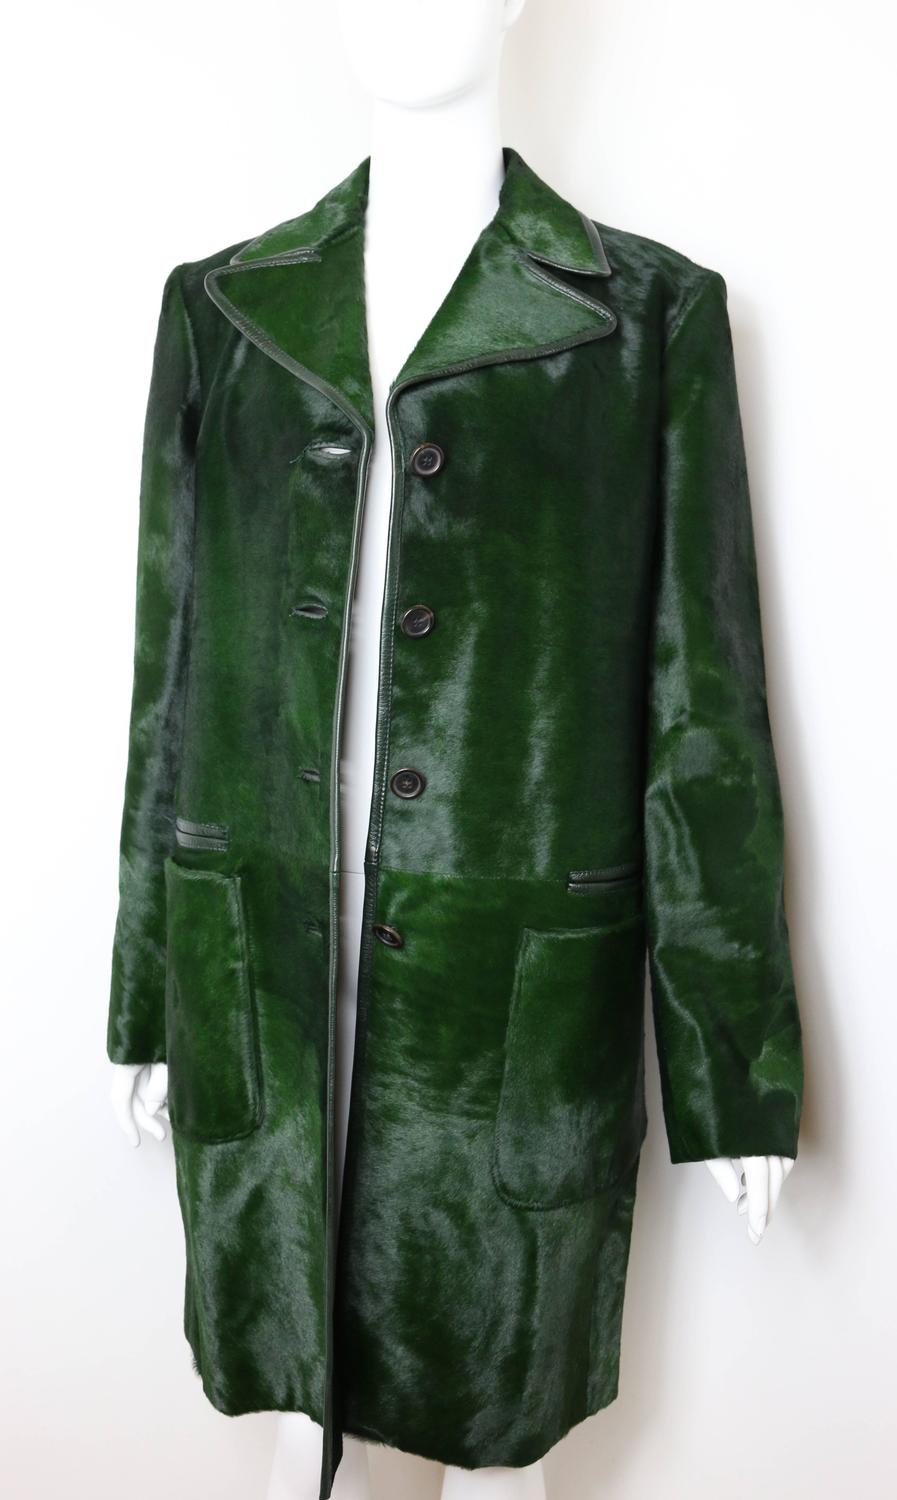 discount prada wallets - Prada Green Pony Leather Coat at 1stdibs